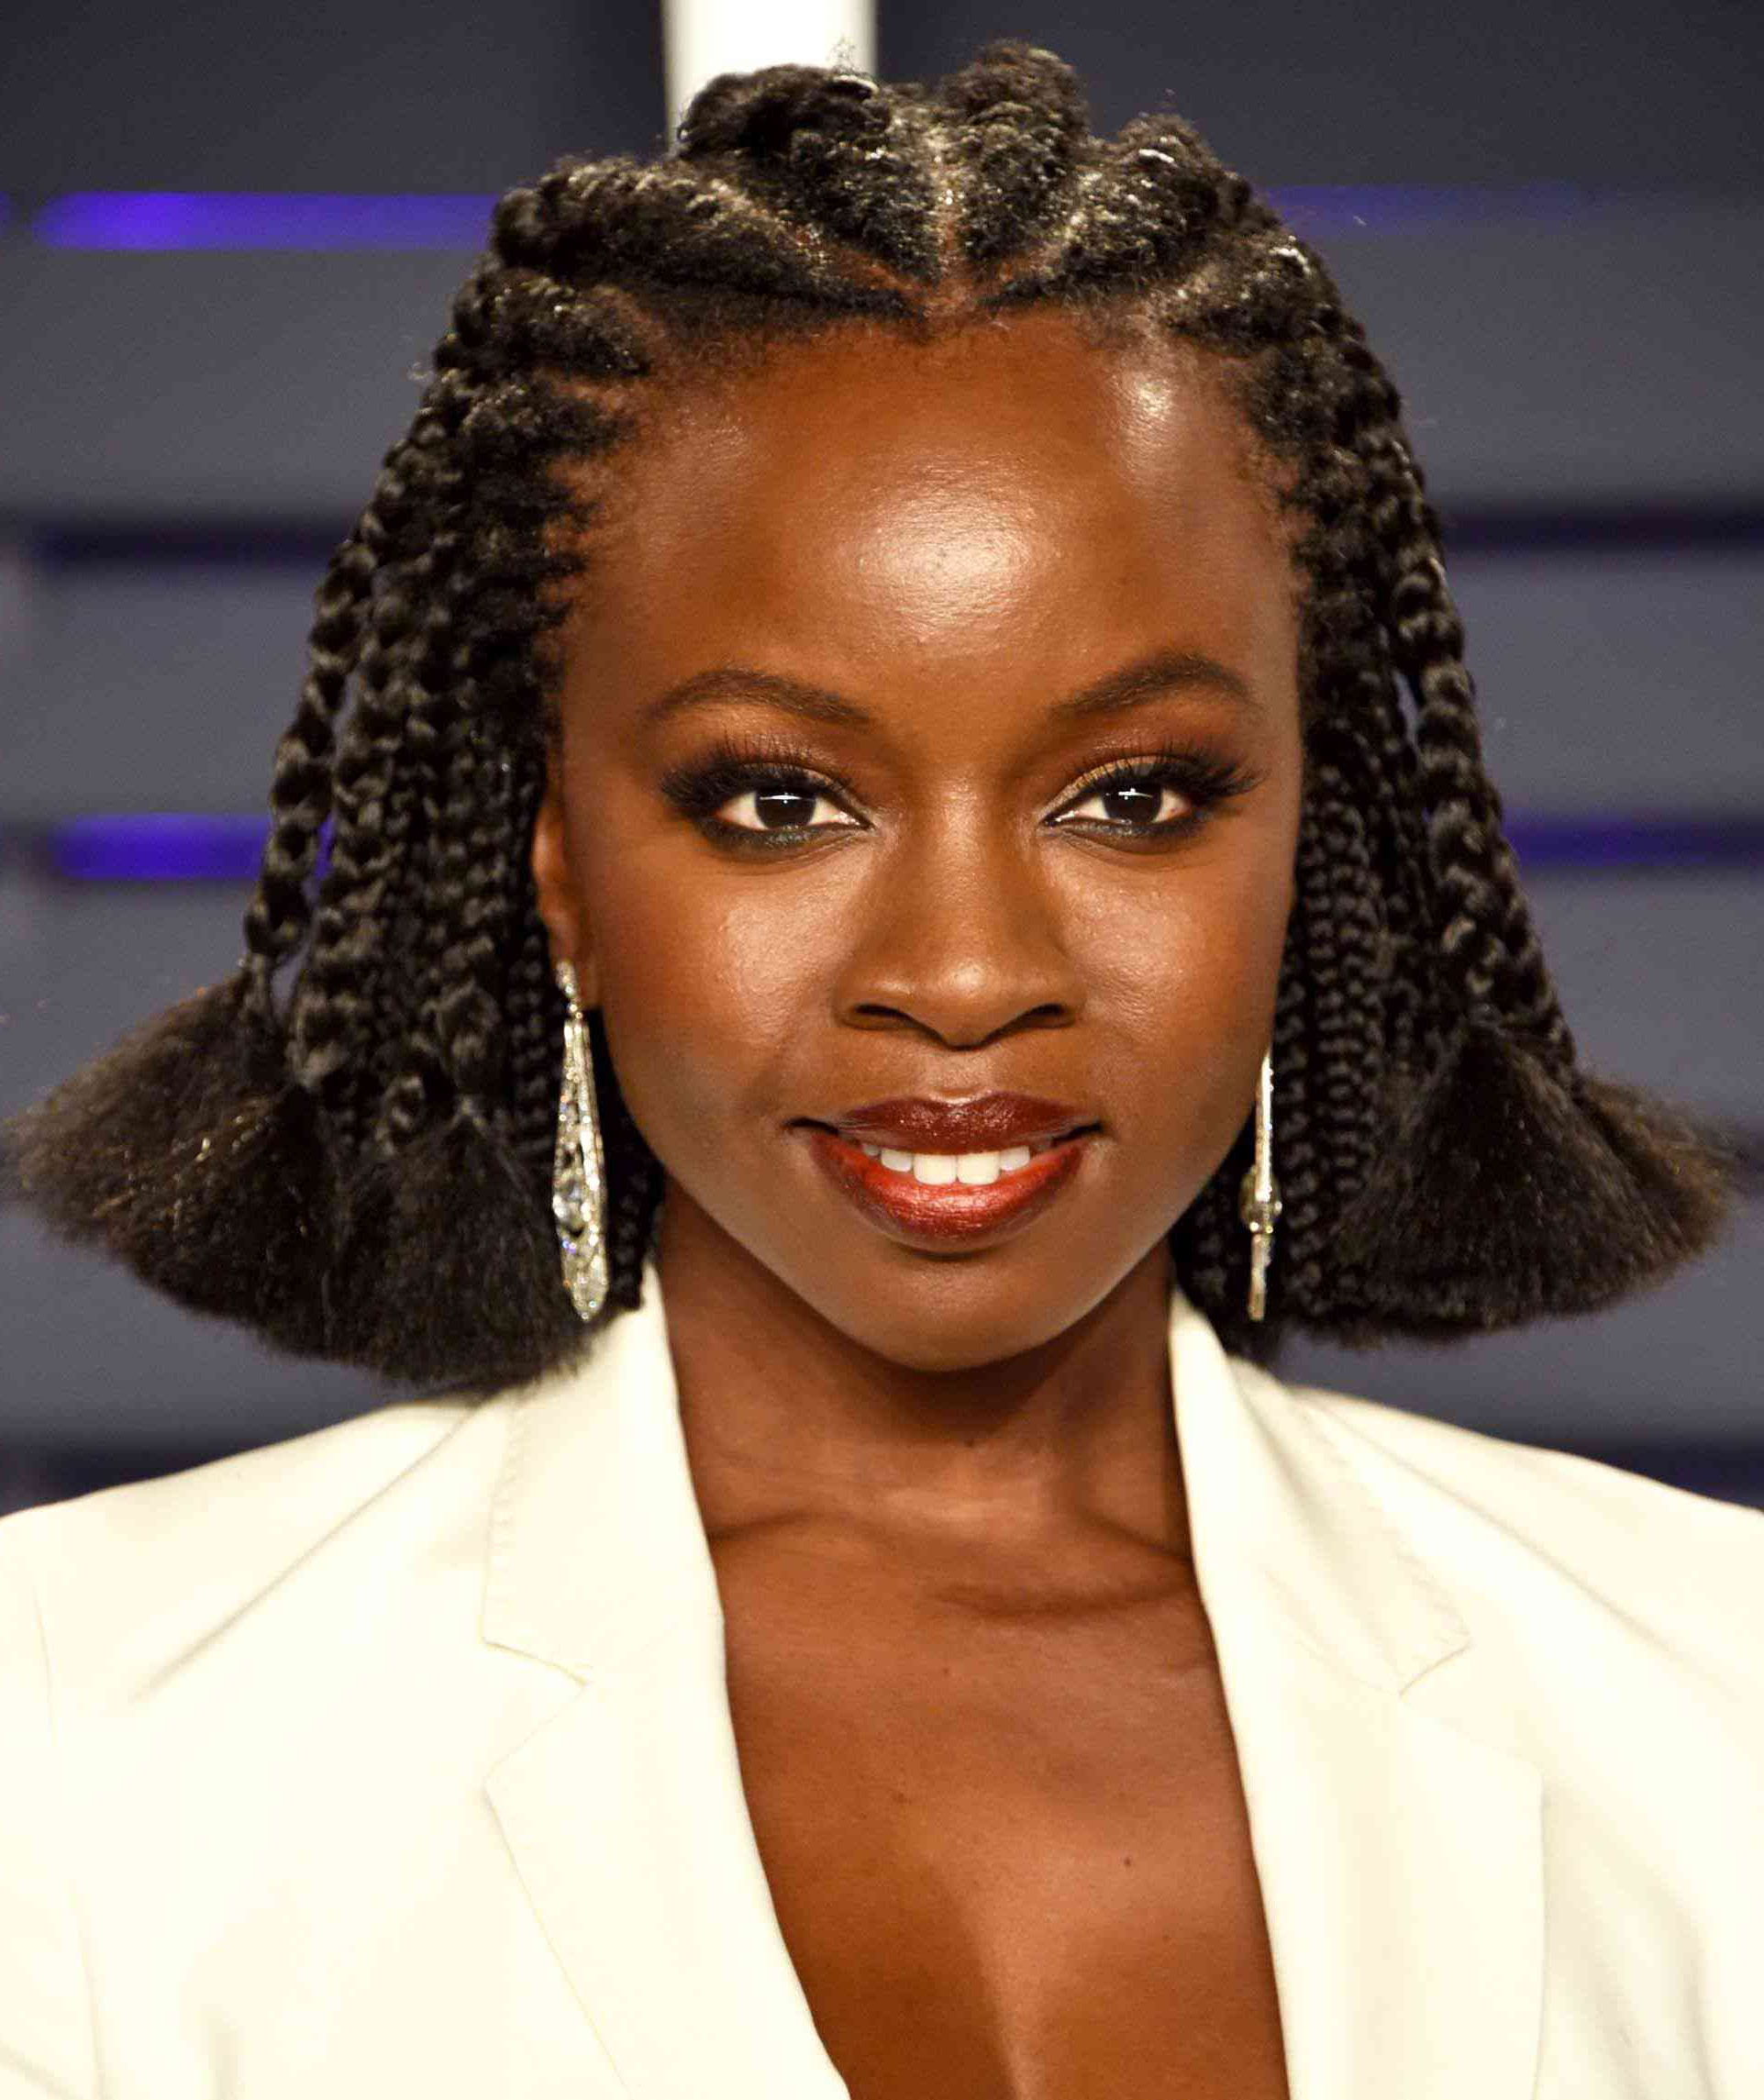 20 Stunning Braided Hairstyles For Natural Hair Inside Well Known Twisted Lob Braided Hairstyles (View 16 of 20)